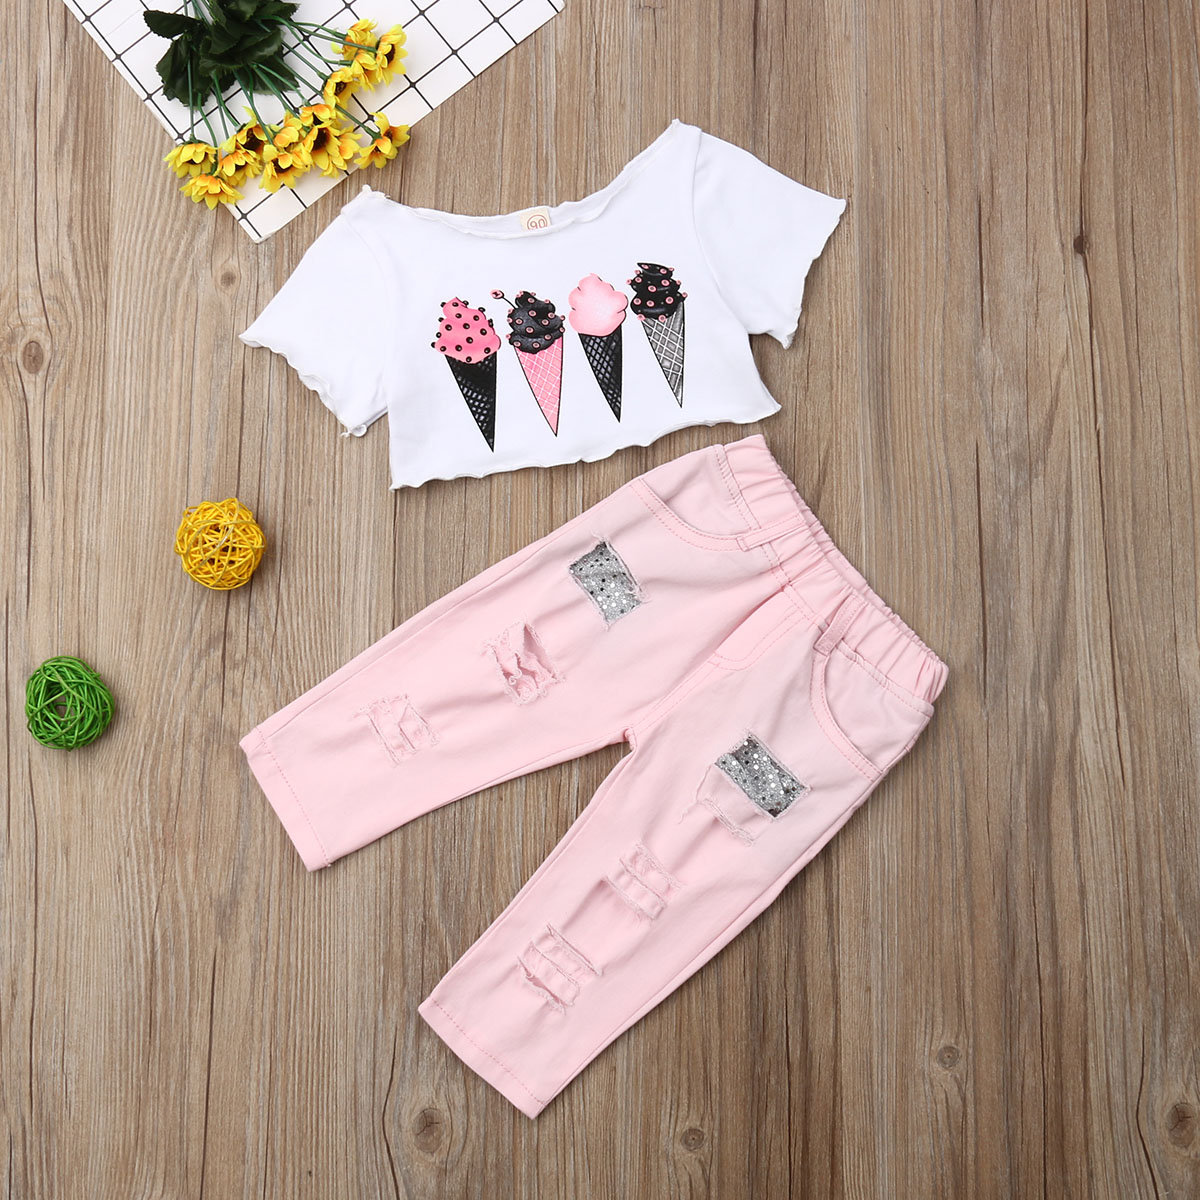 Pudcoco Summer Toddler Baby Girl Clothes Off Shoulder Ice Cream Print Crop Tops Ripped Denim Long Pants 2Pcs Outfits Clothes Set